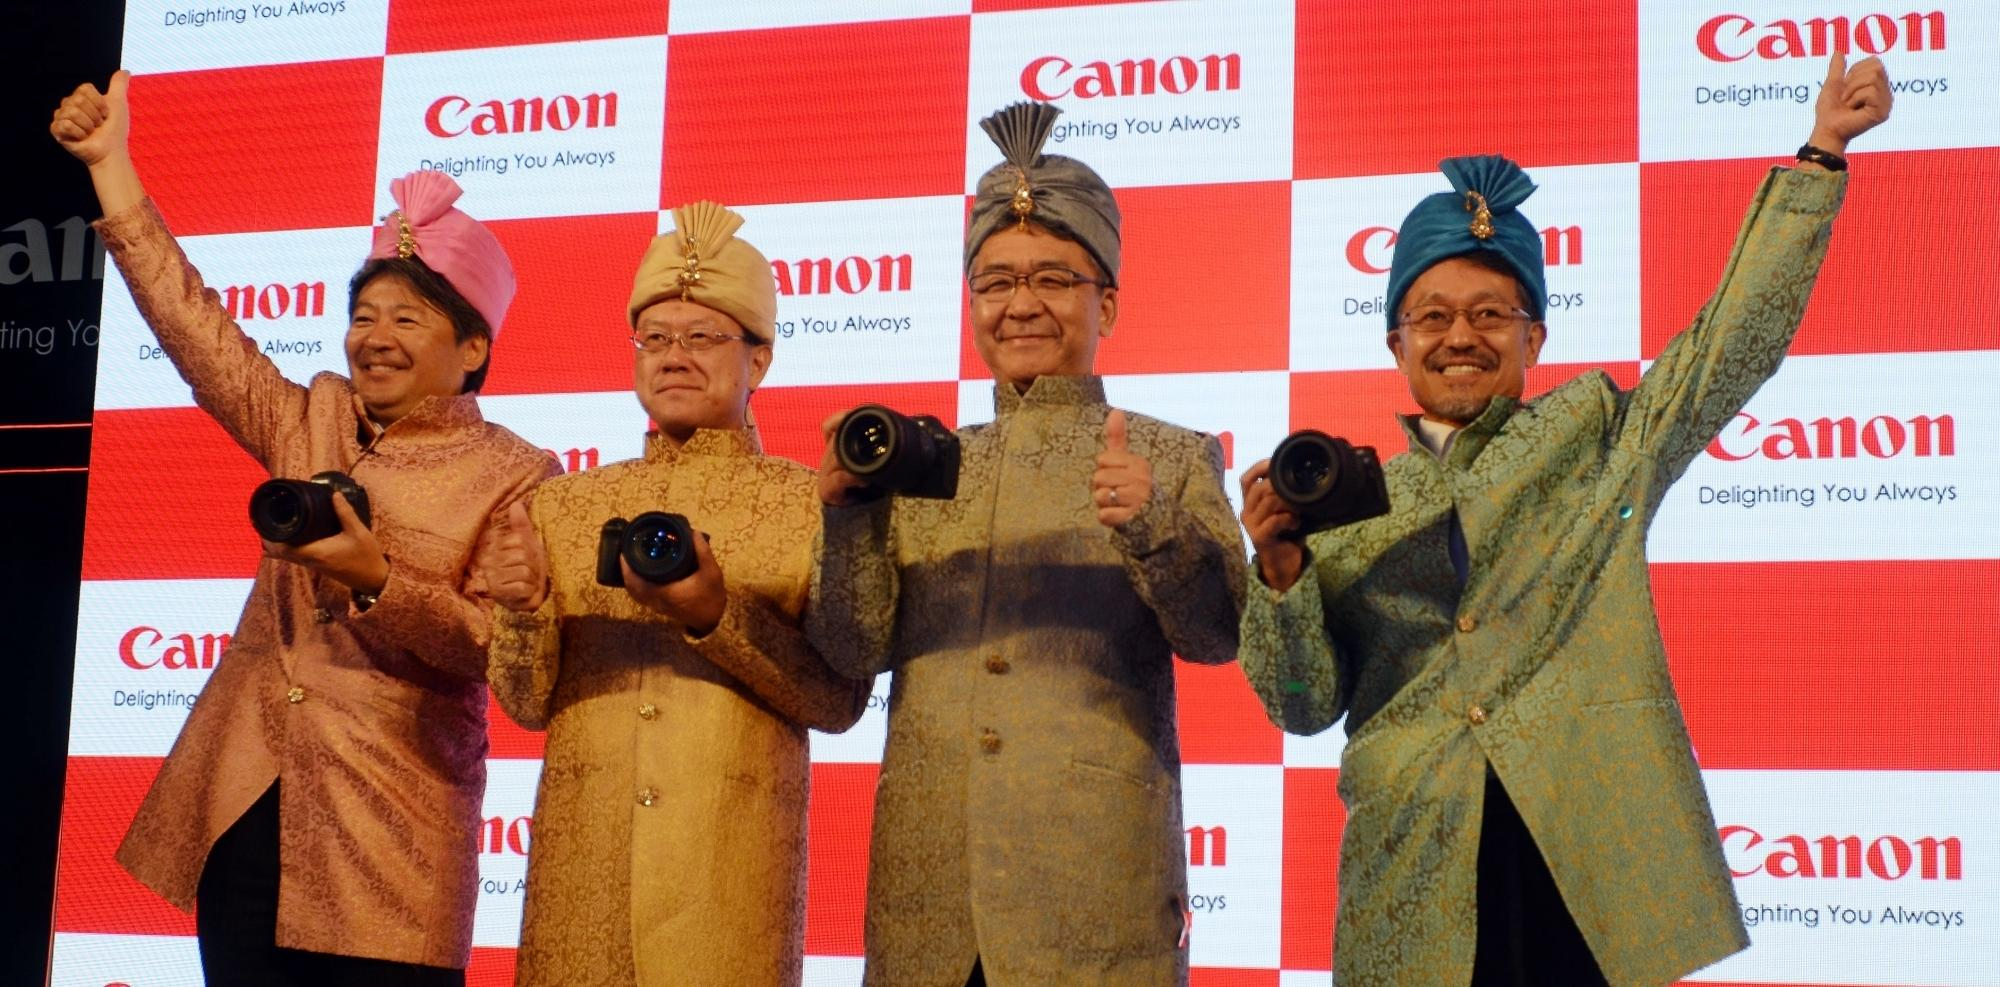 DSLR leader Canon unveils its first full-frame mirrorless camera in India